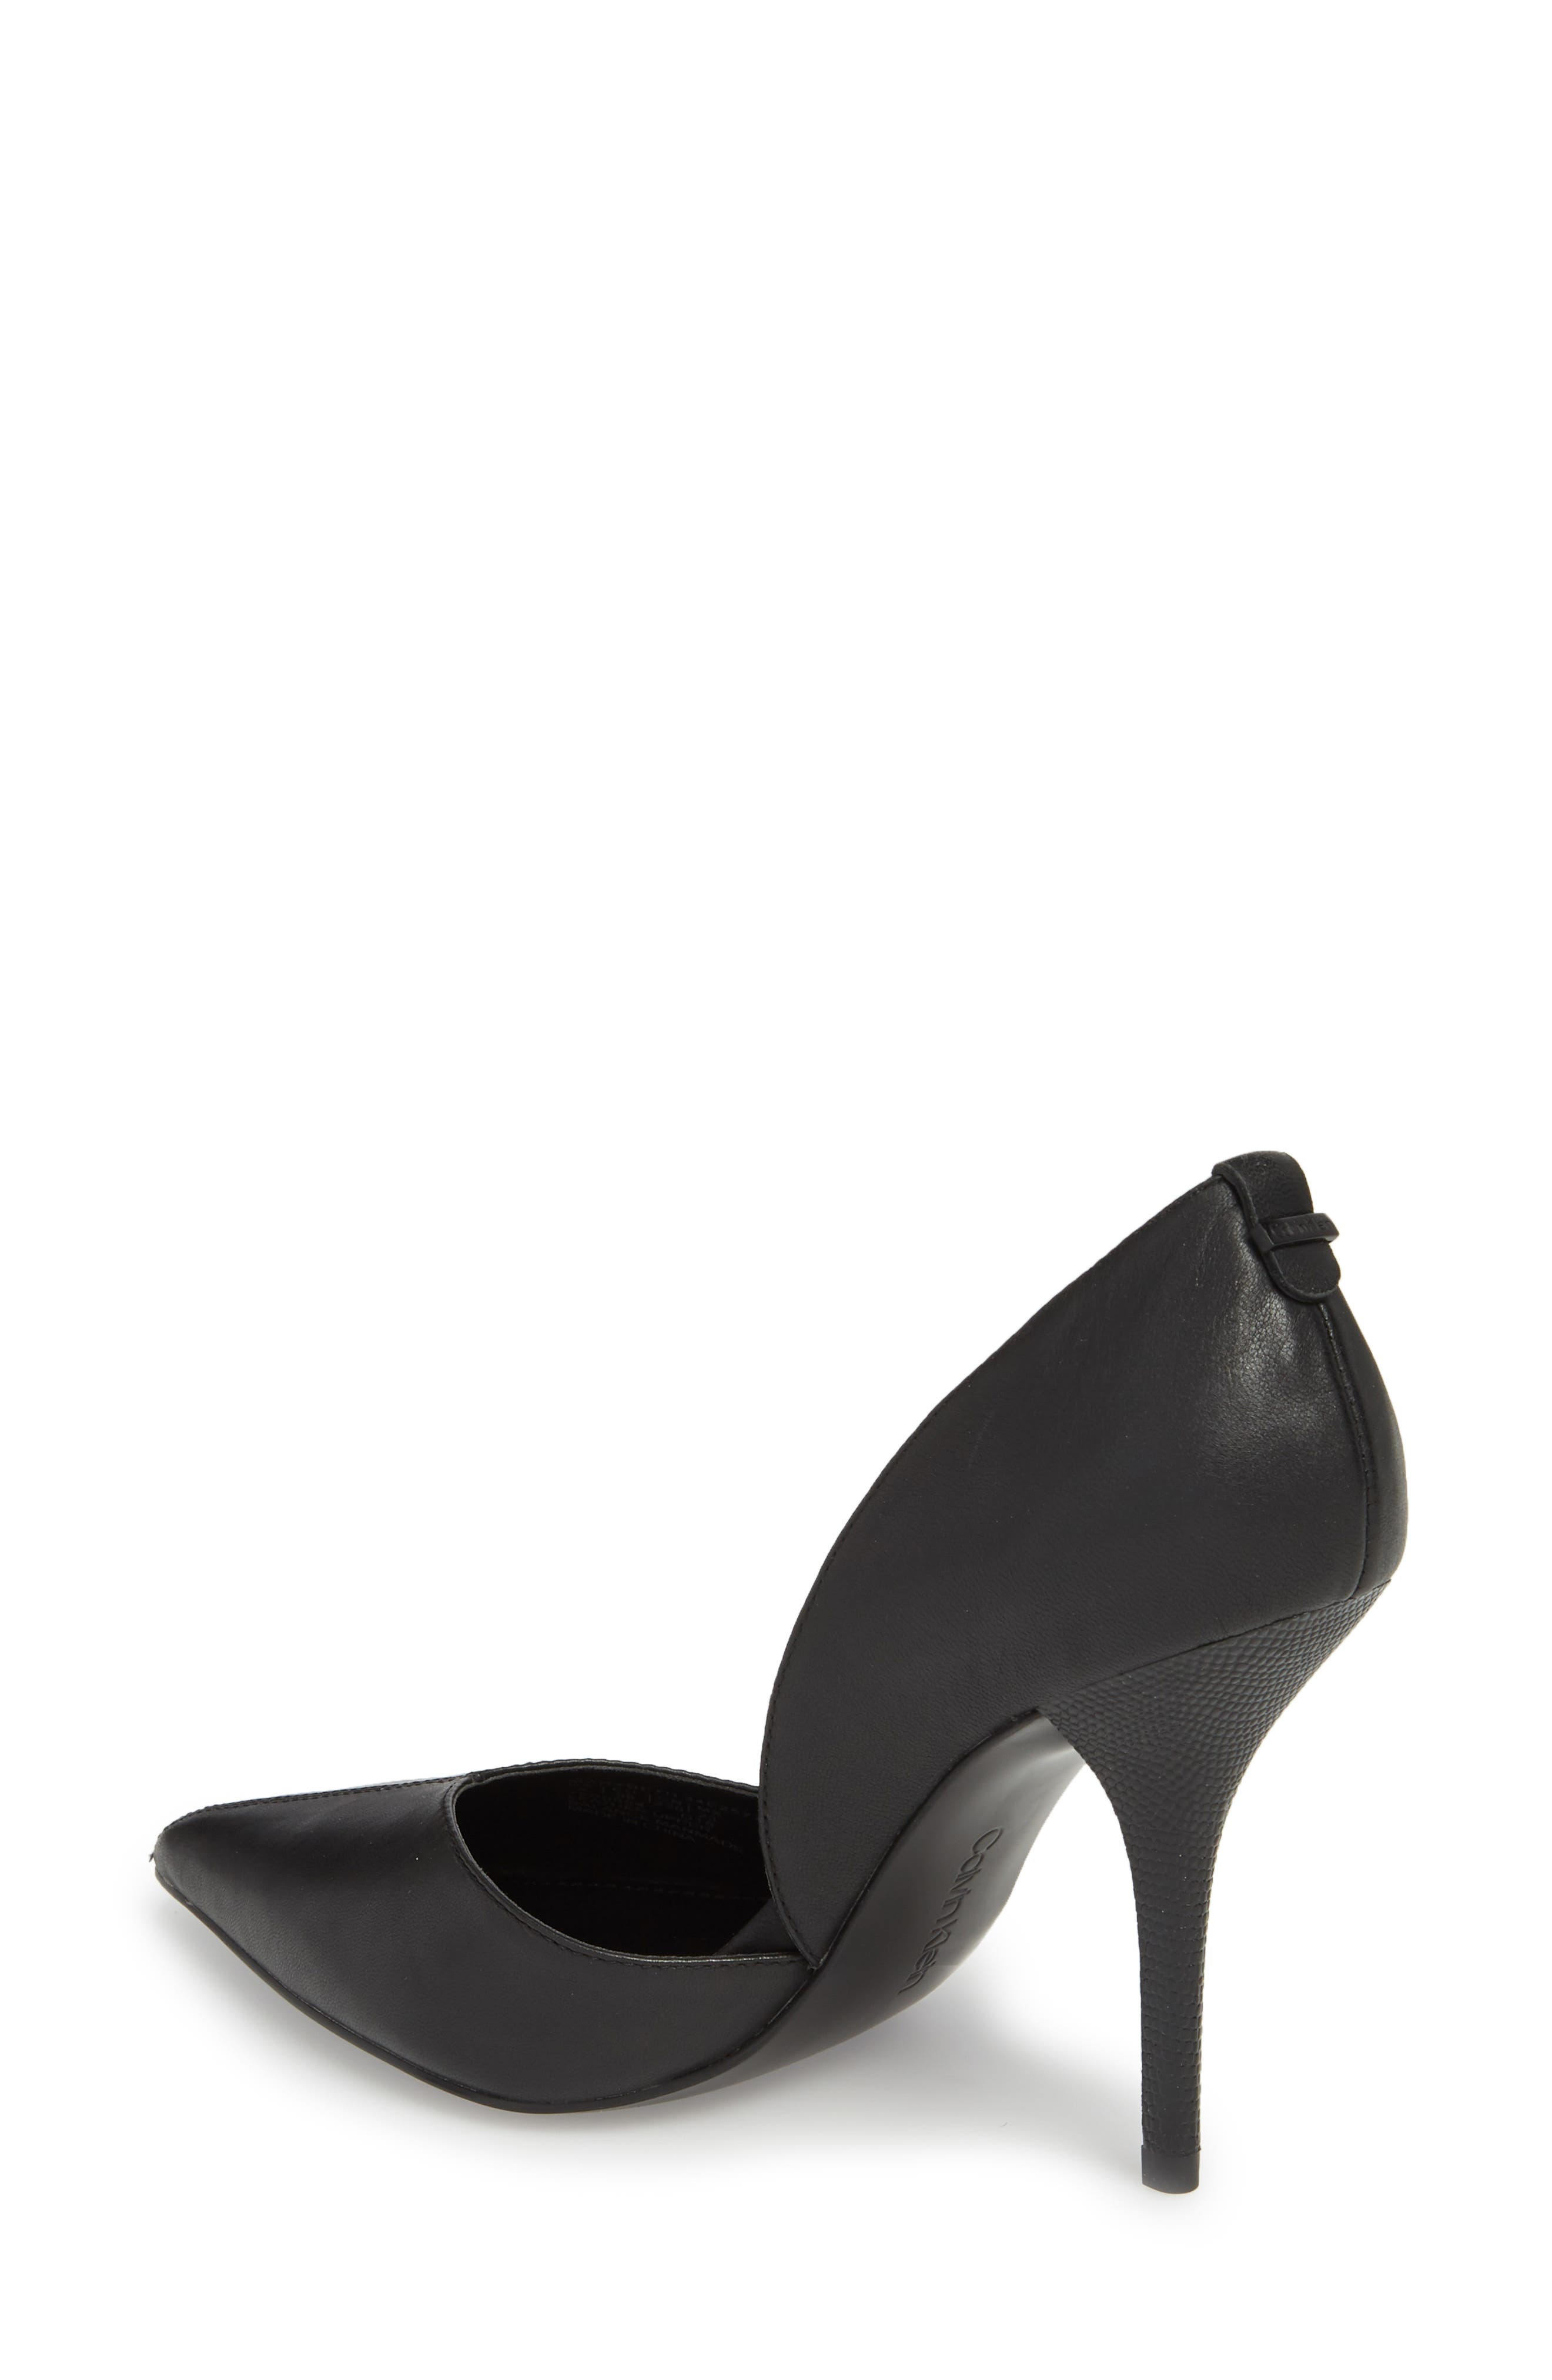 Marybeth d'Orsay Pump,                             Alternate thumbnail 2, color,                             001